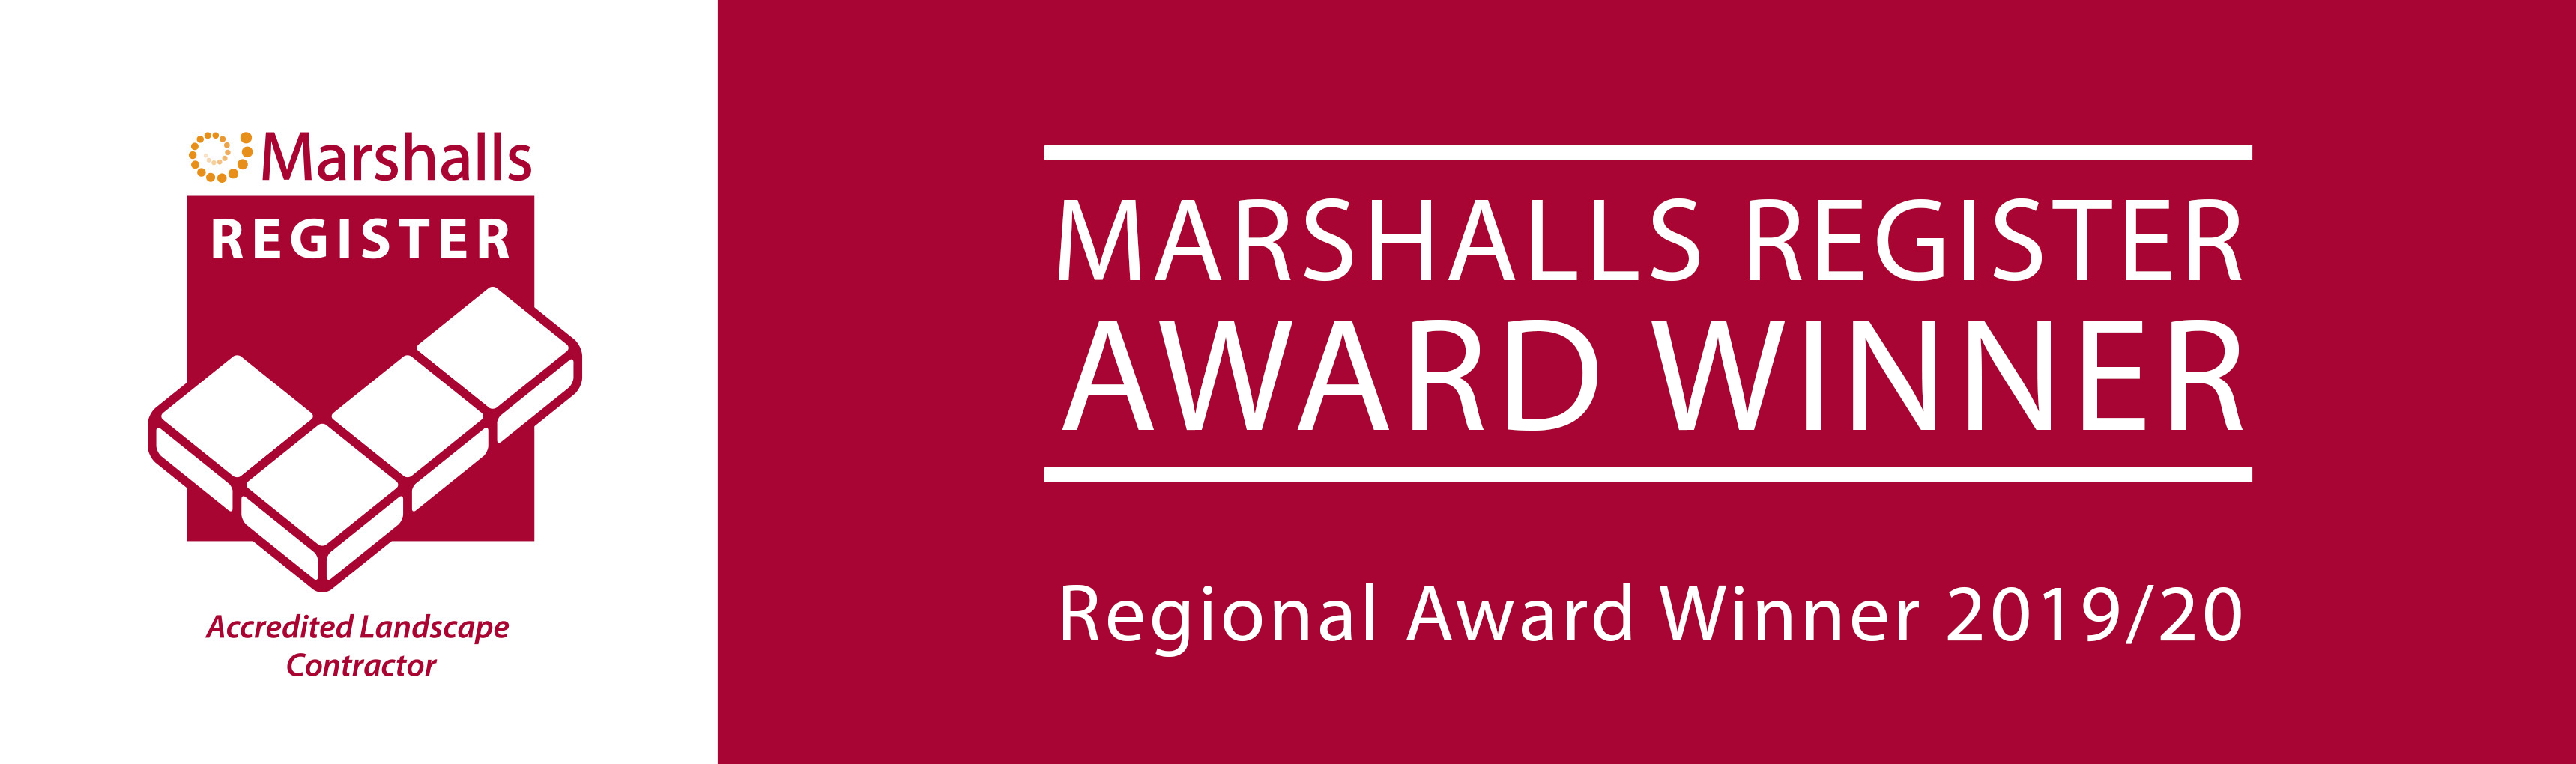 Marshalls Register Regional Awards Banner 2019.20